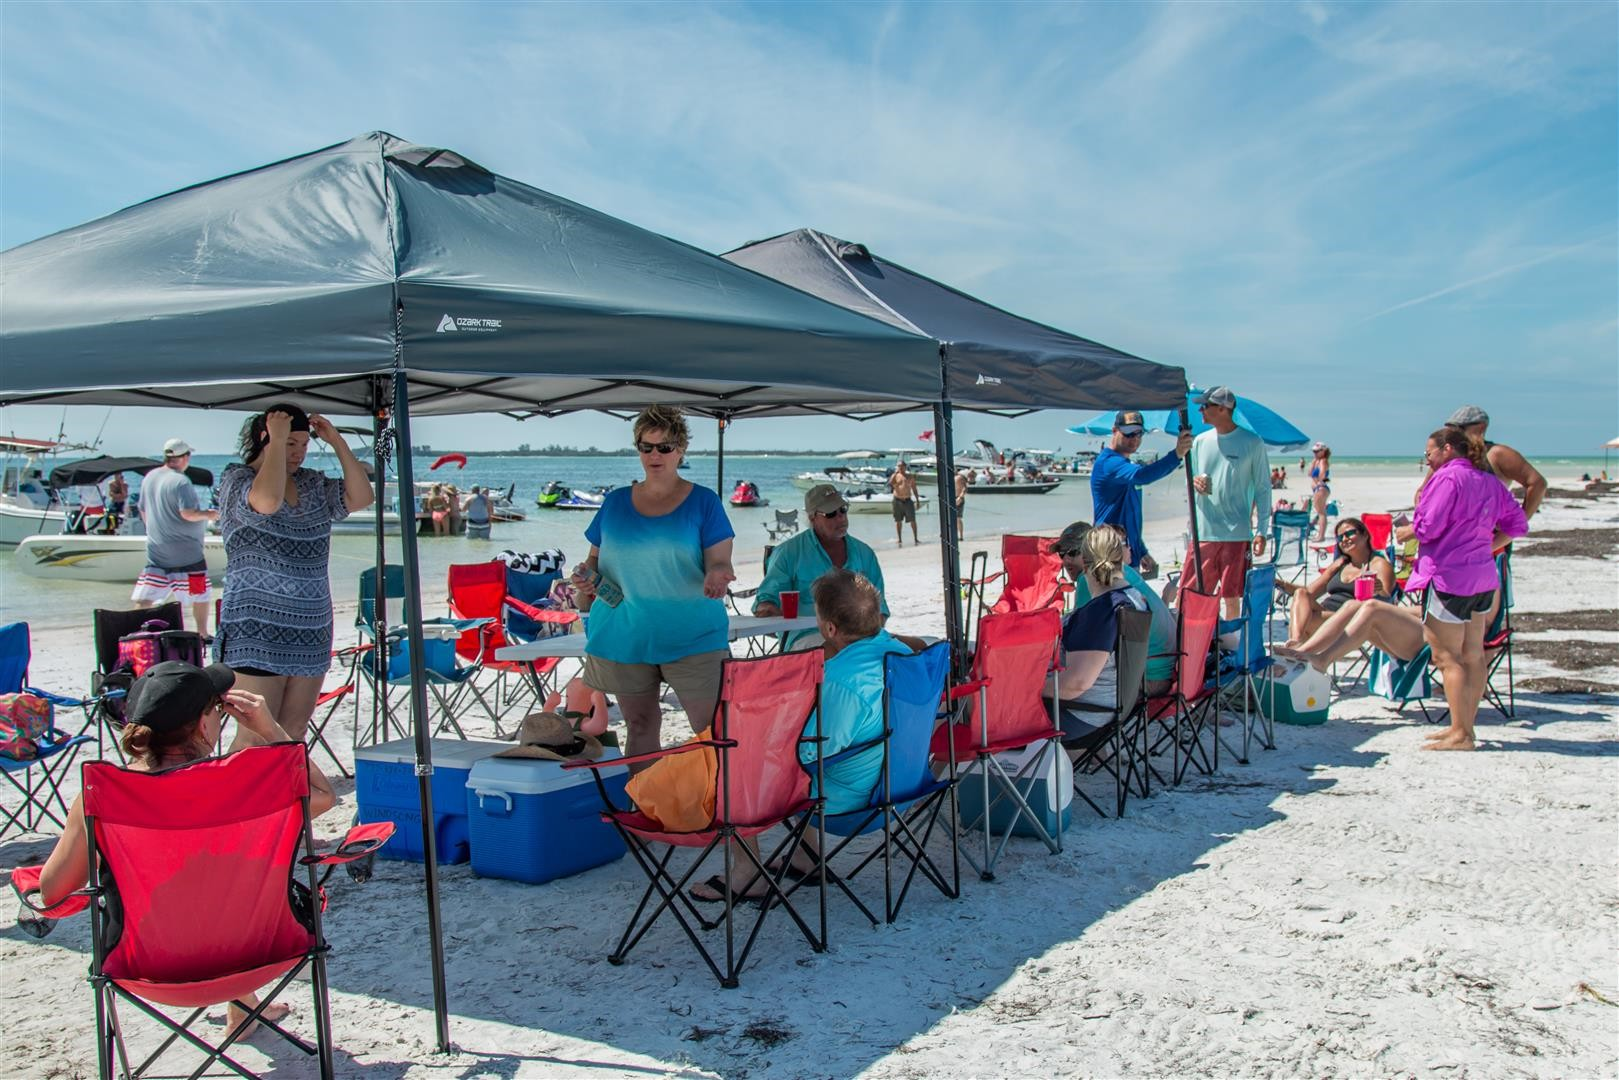 Pontoon Boat Rentals Island Beach Bbq Cookout On The